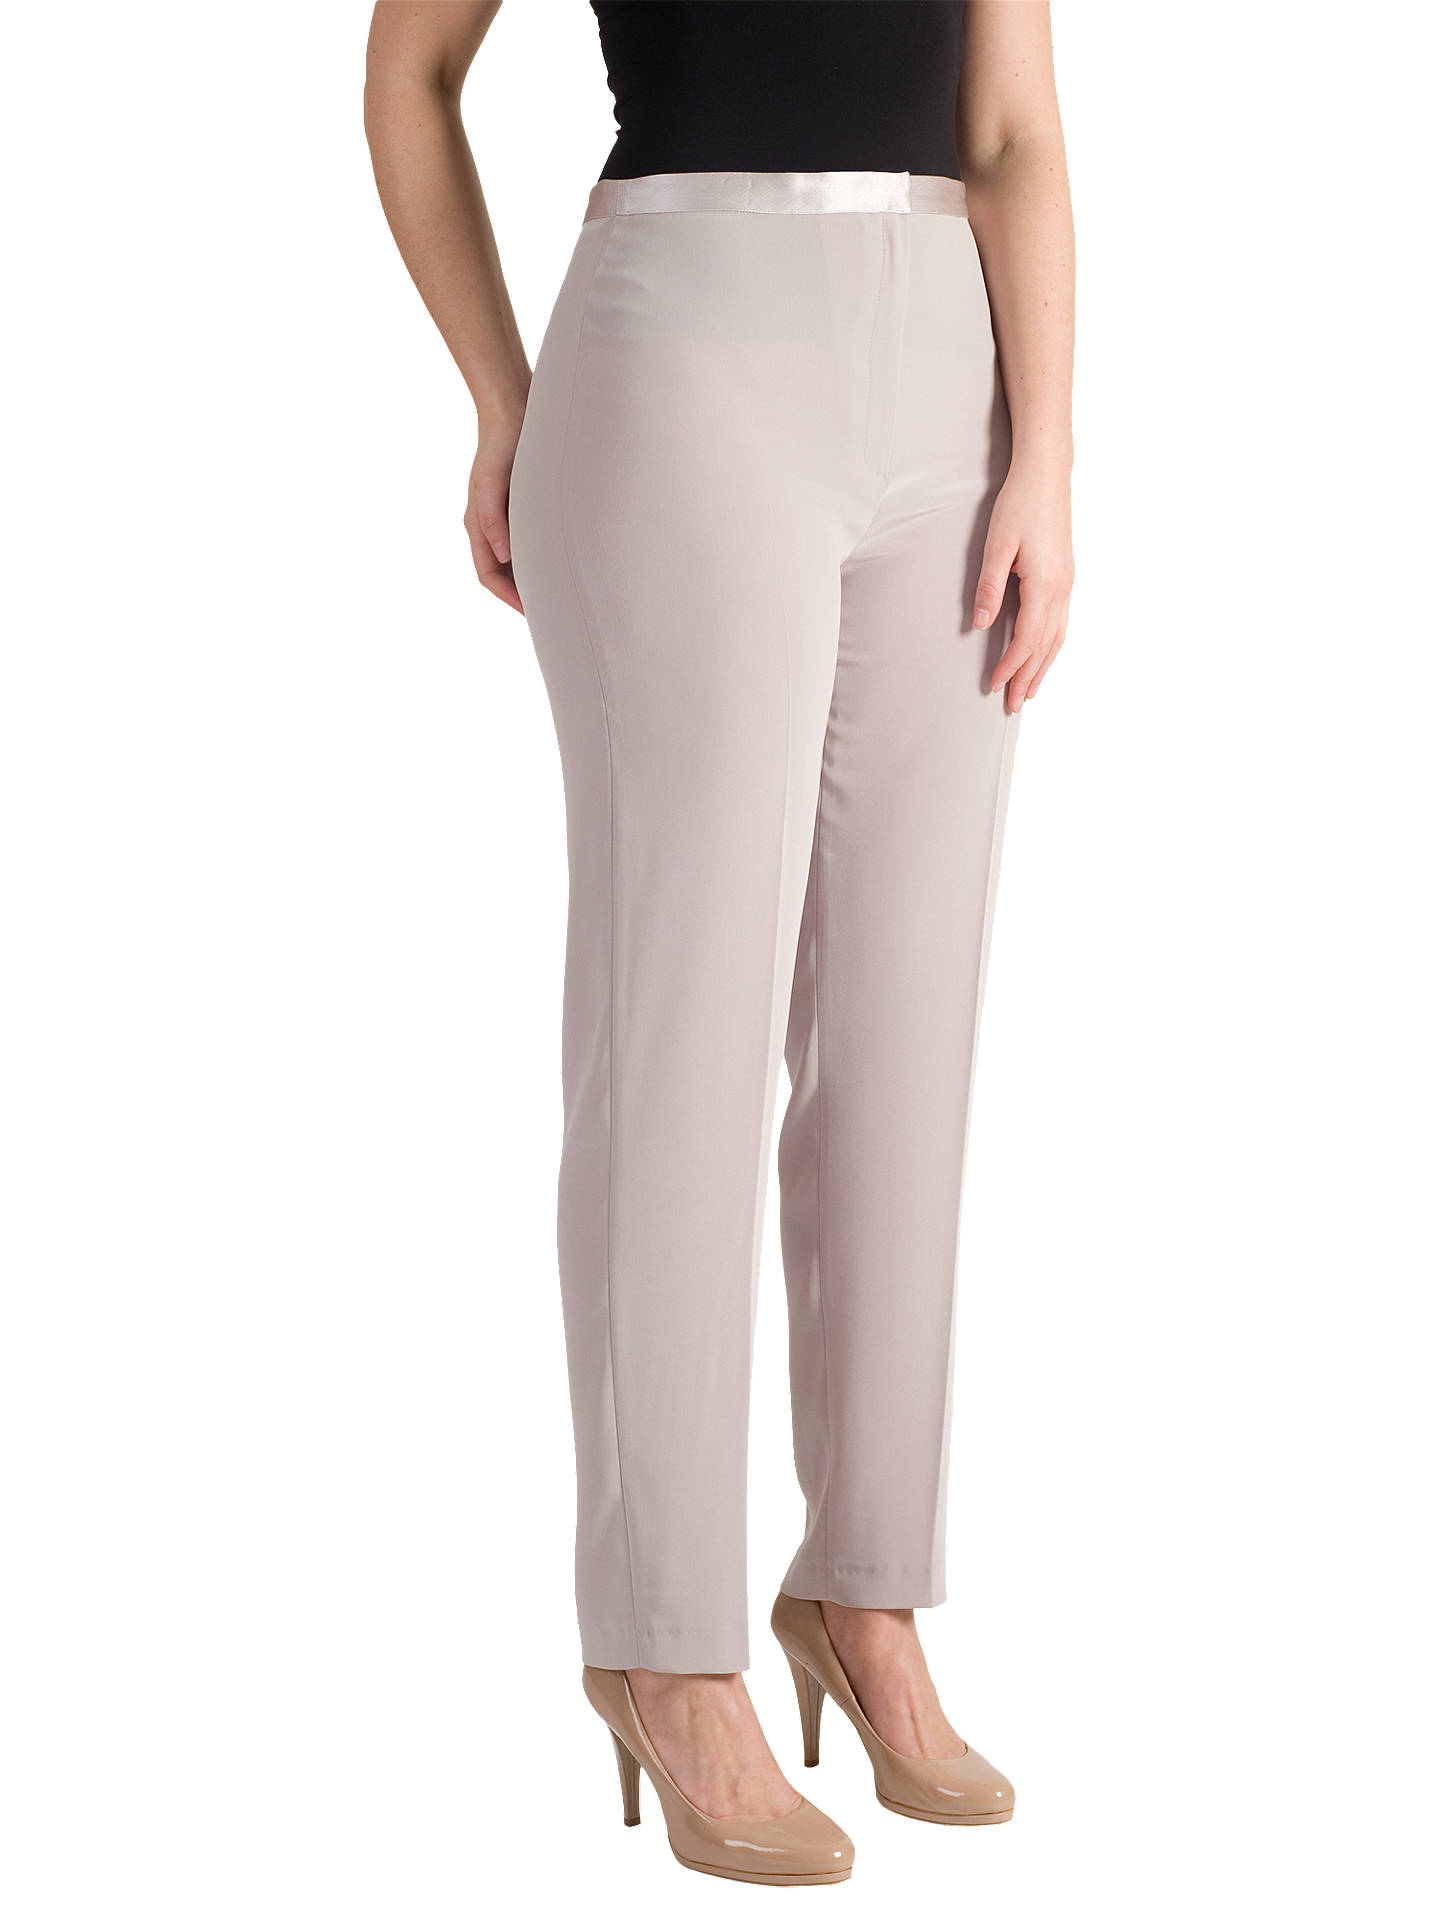 BuyChesca Pull On Stretch Trousers, Mink, 12 Online at johnlewis.com